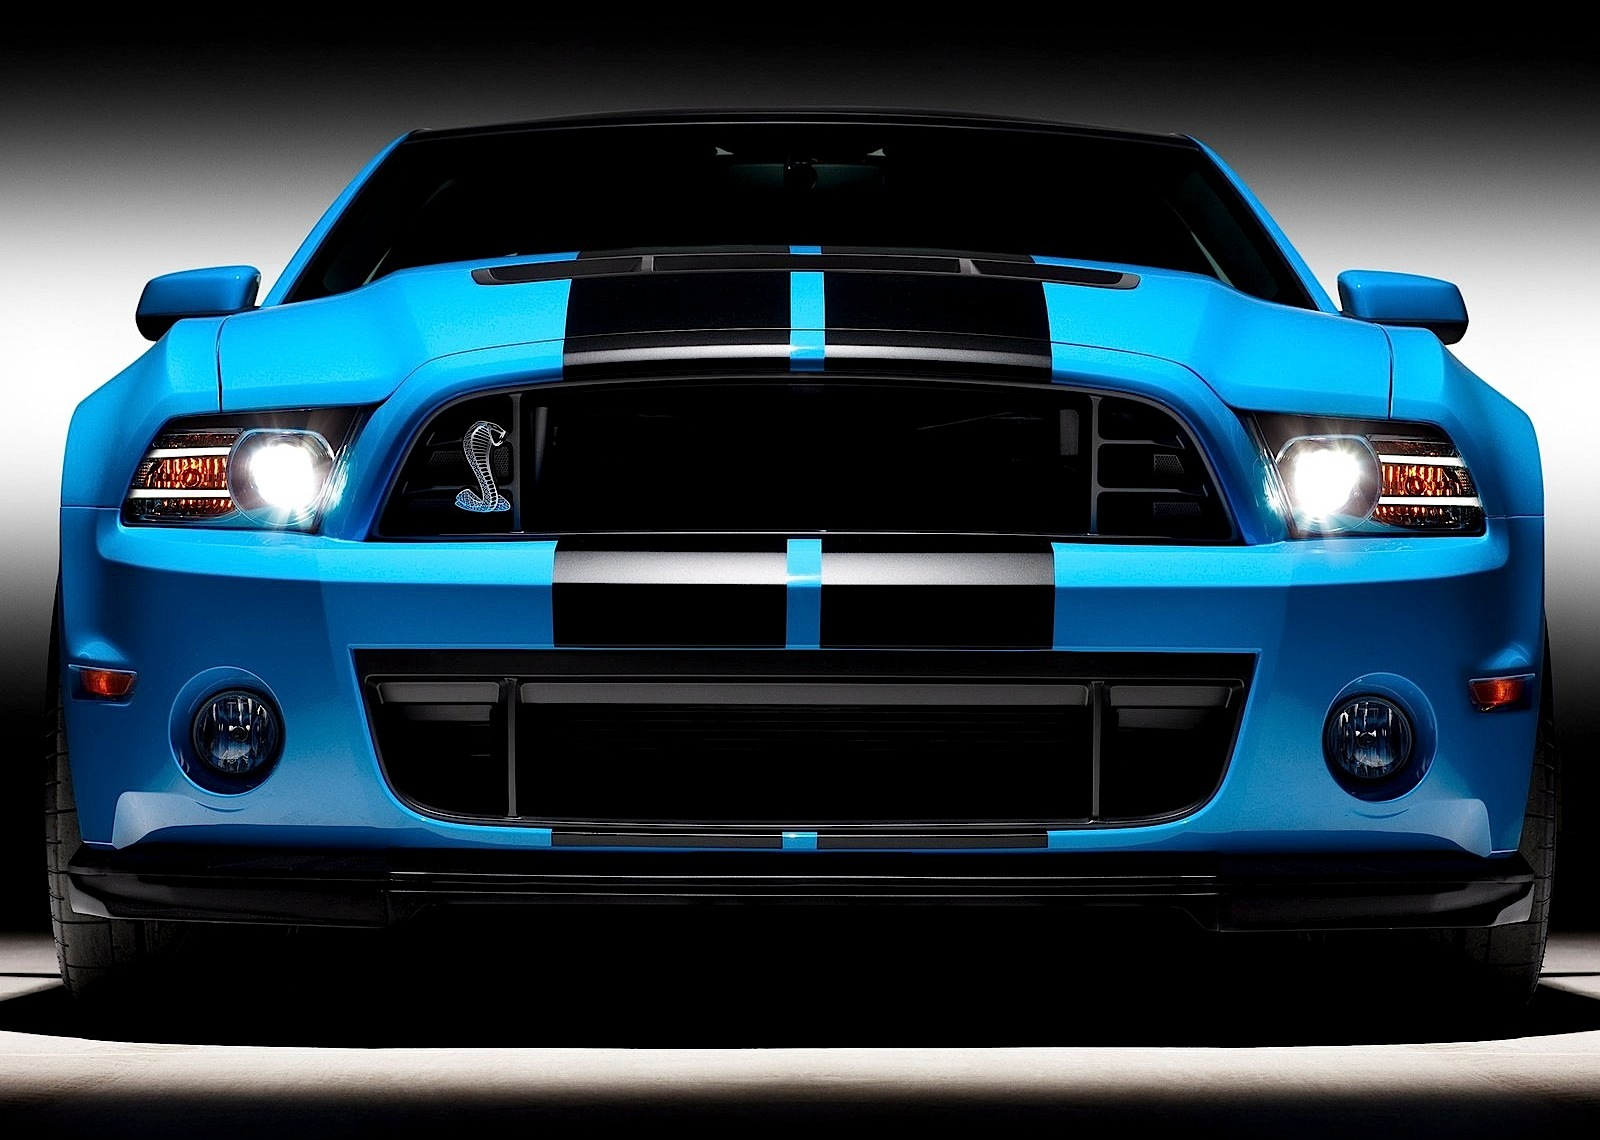 2015 Mustang Gt Supercharger >> FORD Mustang Shelby GT500 specs & photos - 2012, 2013 ...